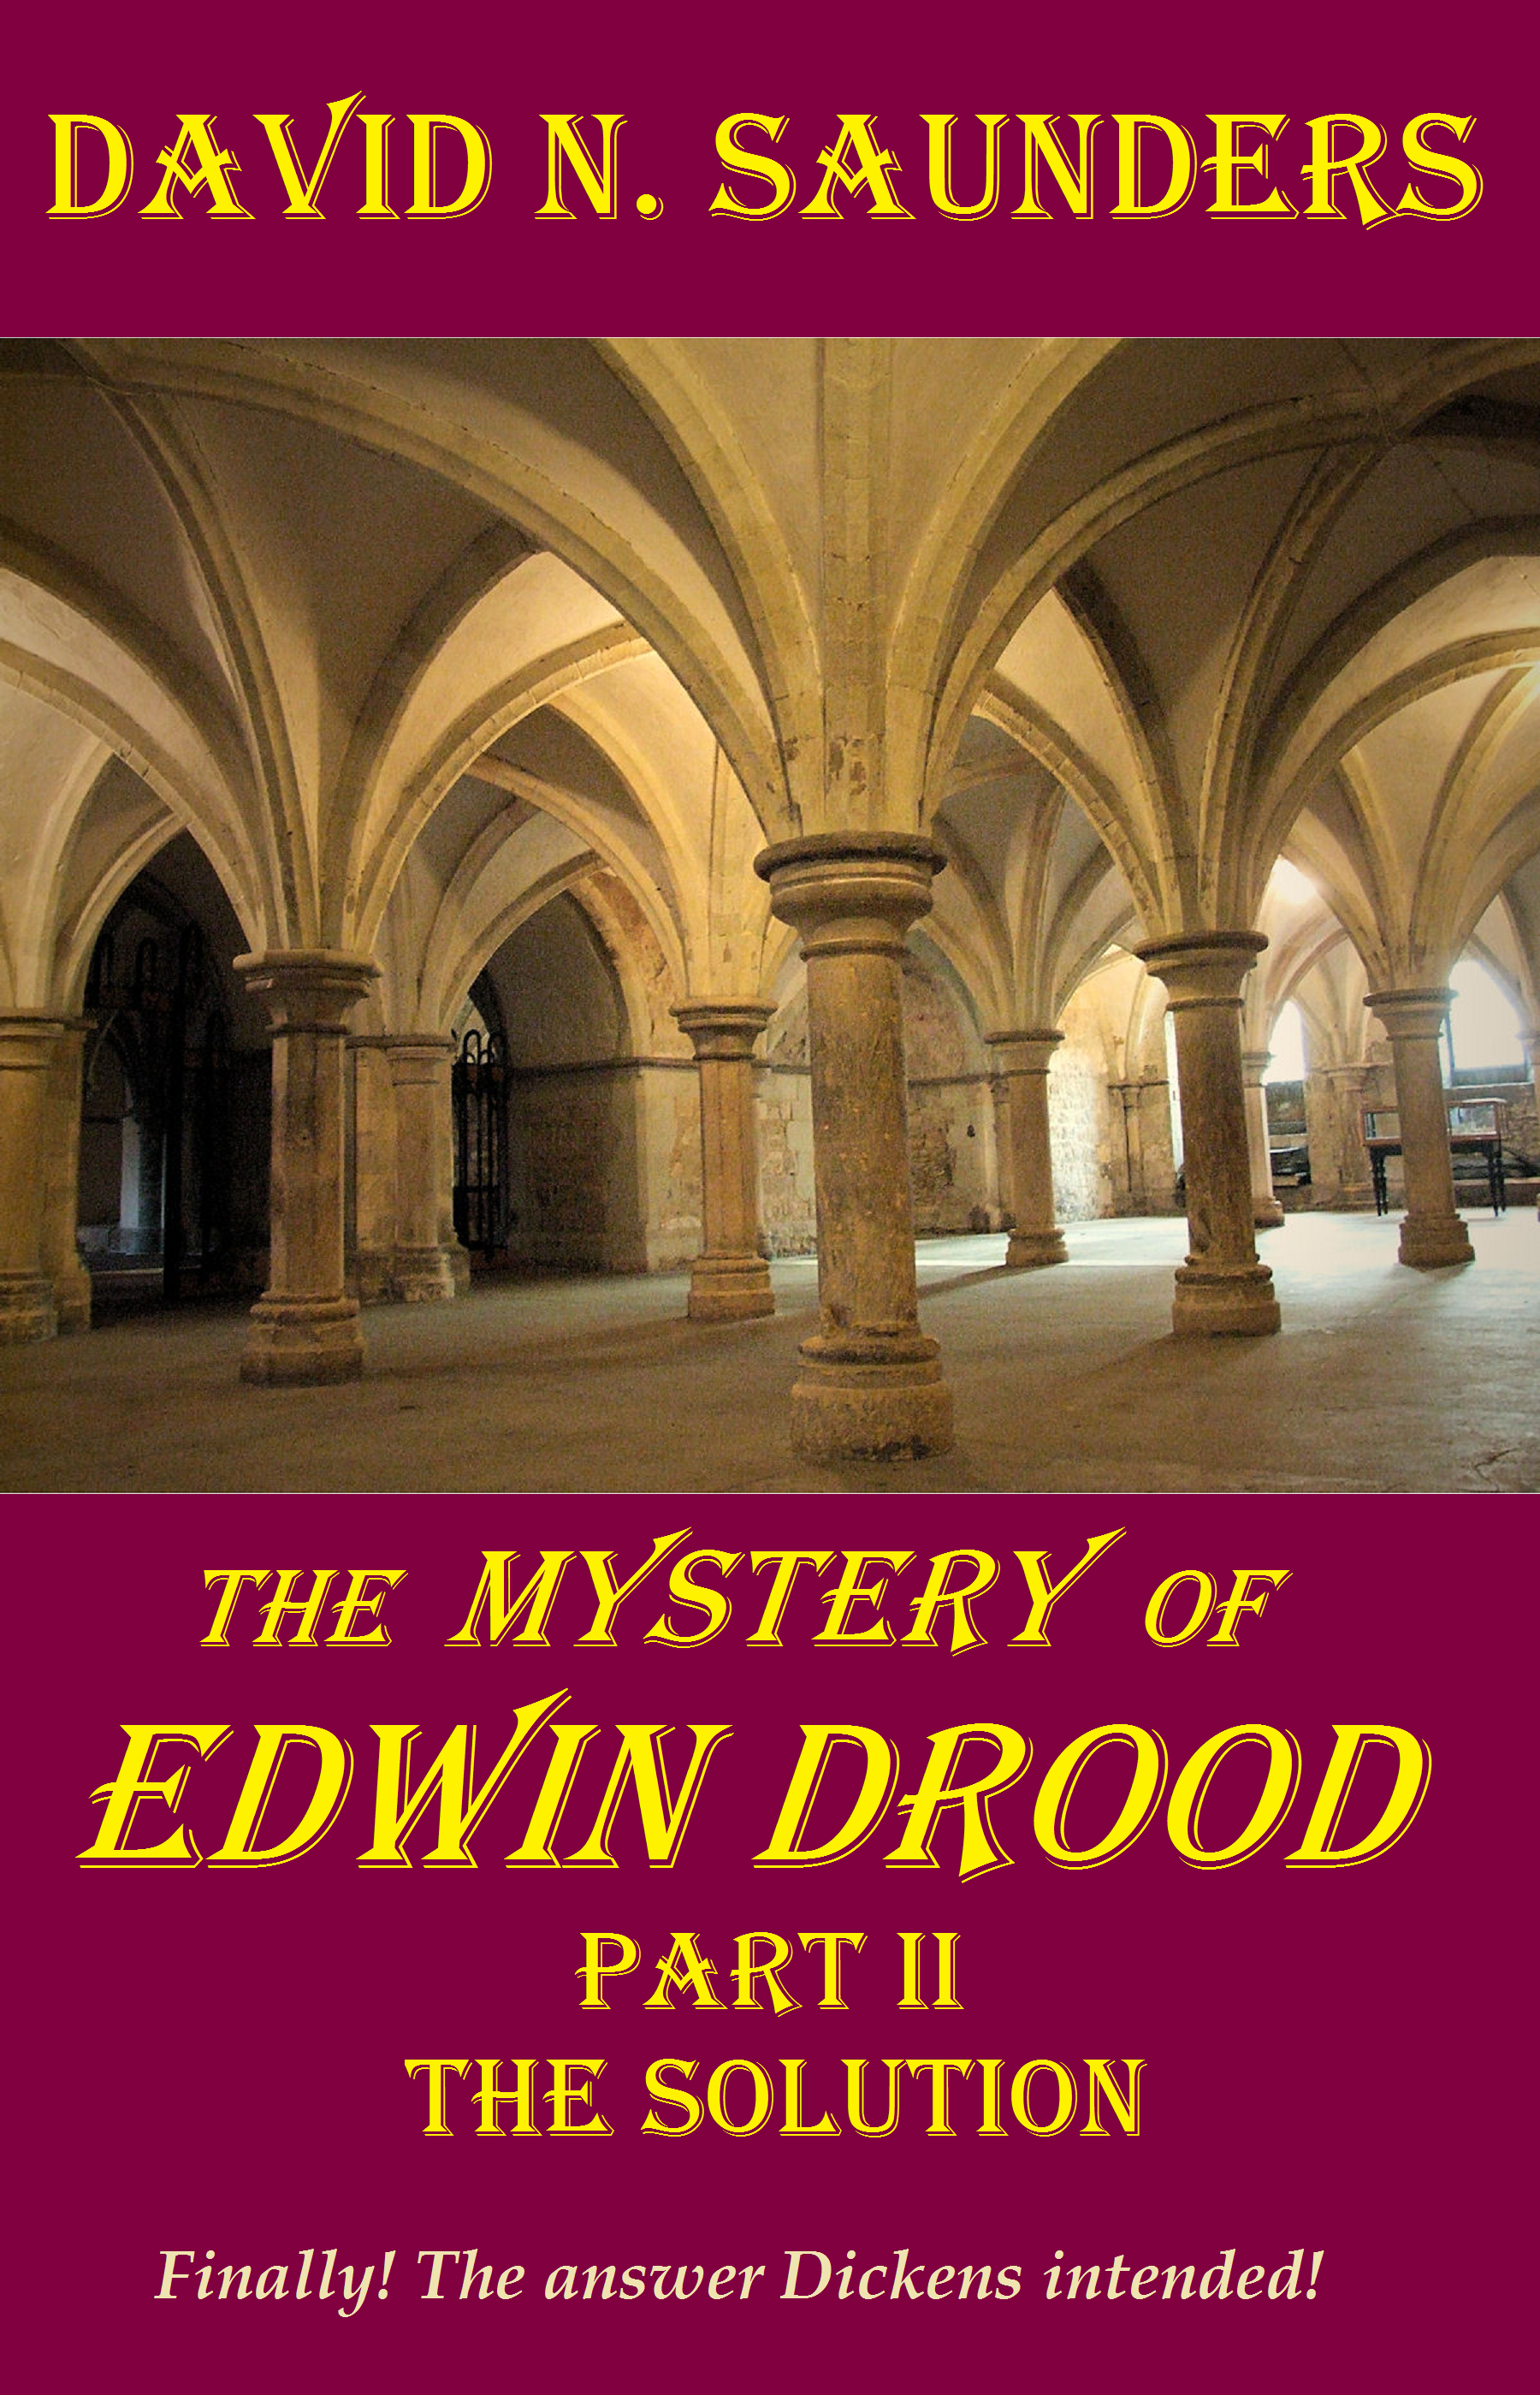 David Saunders - The Mystery of Edwin Drood, Part II, The Solution